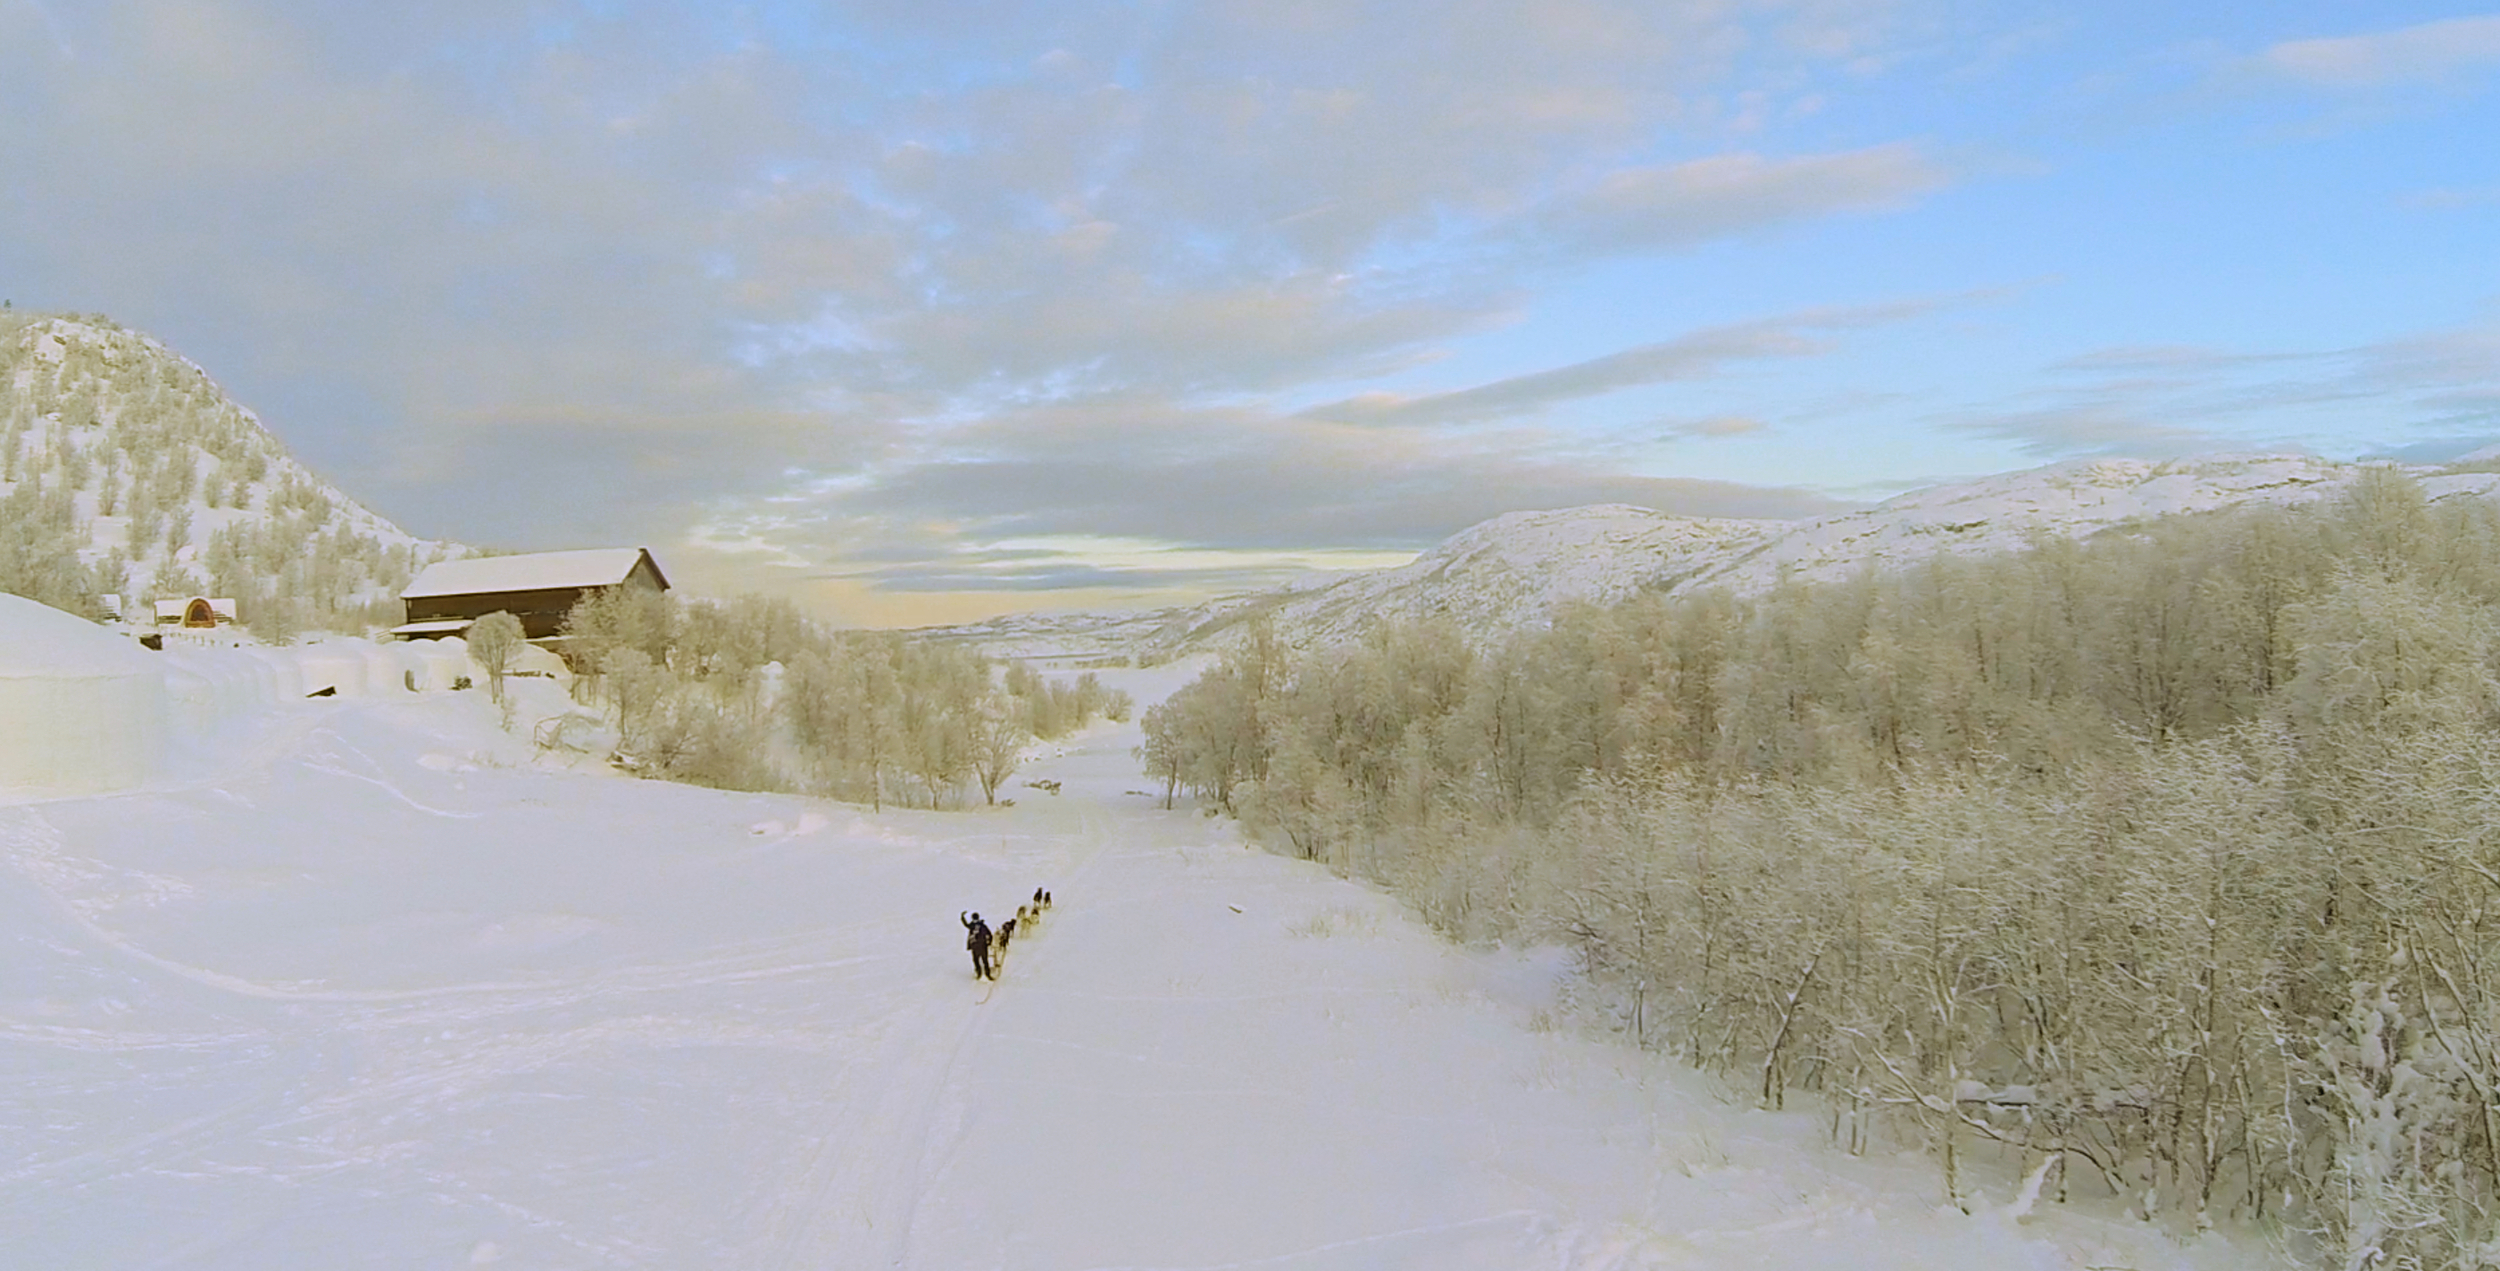 Dogsledding is one of may excursions available at the Krikenes Snowhotel.